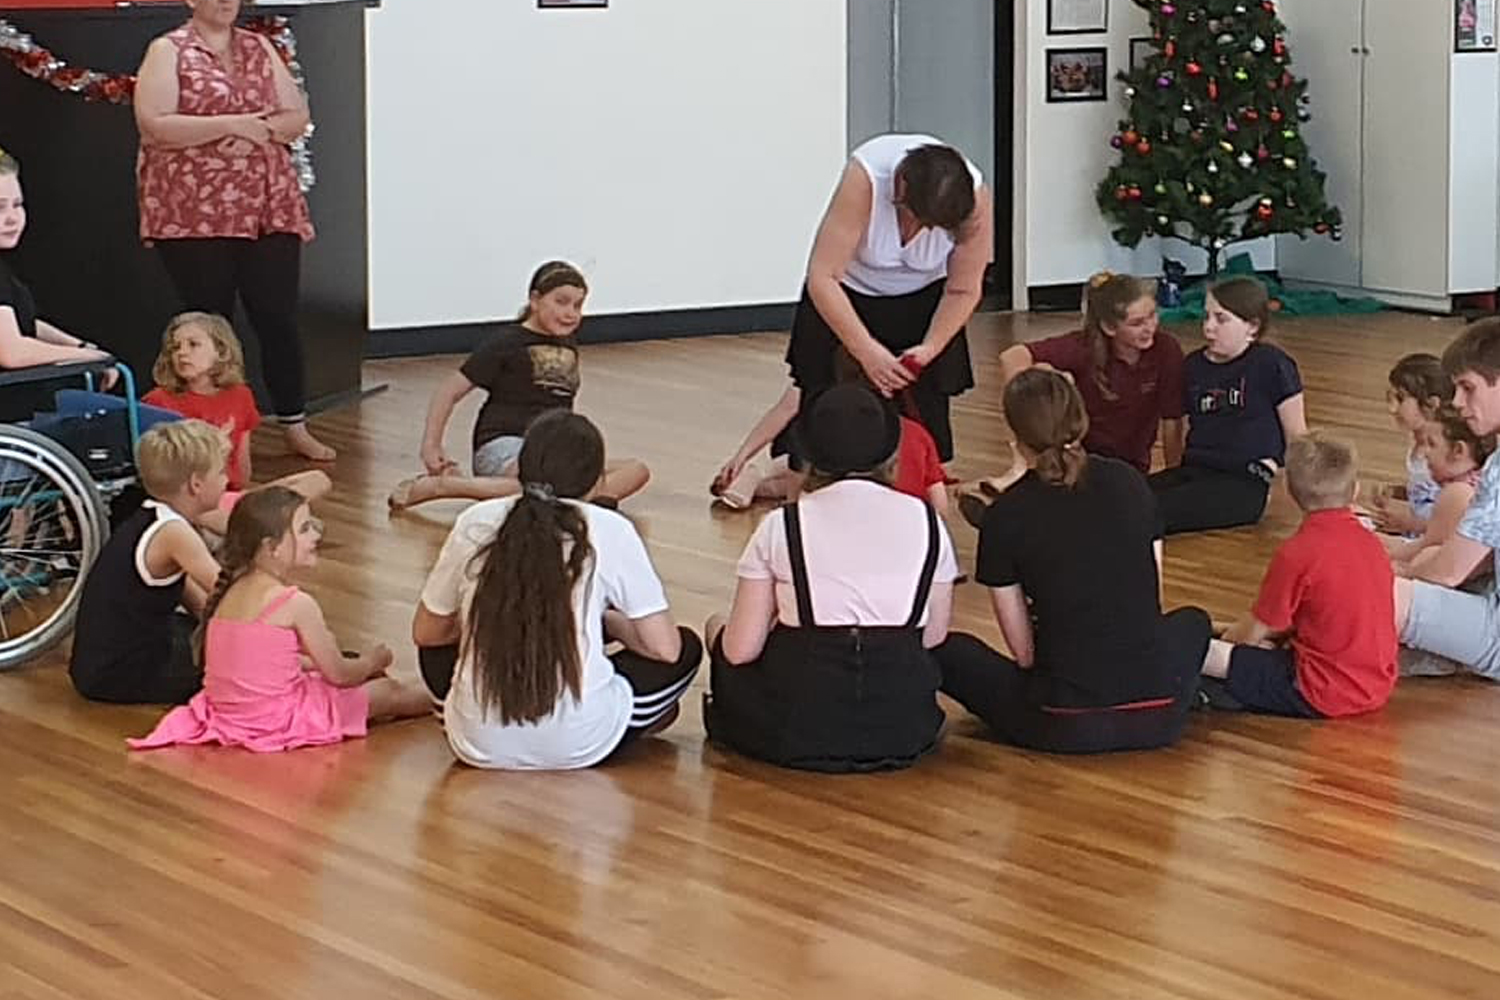 Fun and friendly environment for kids to learn to dance Ballroom and Latin